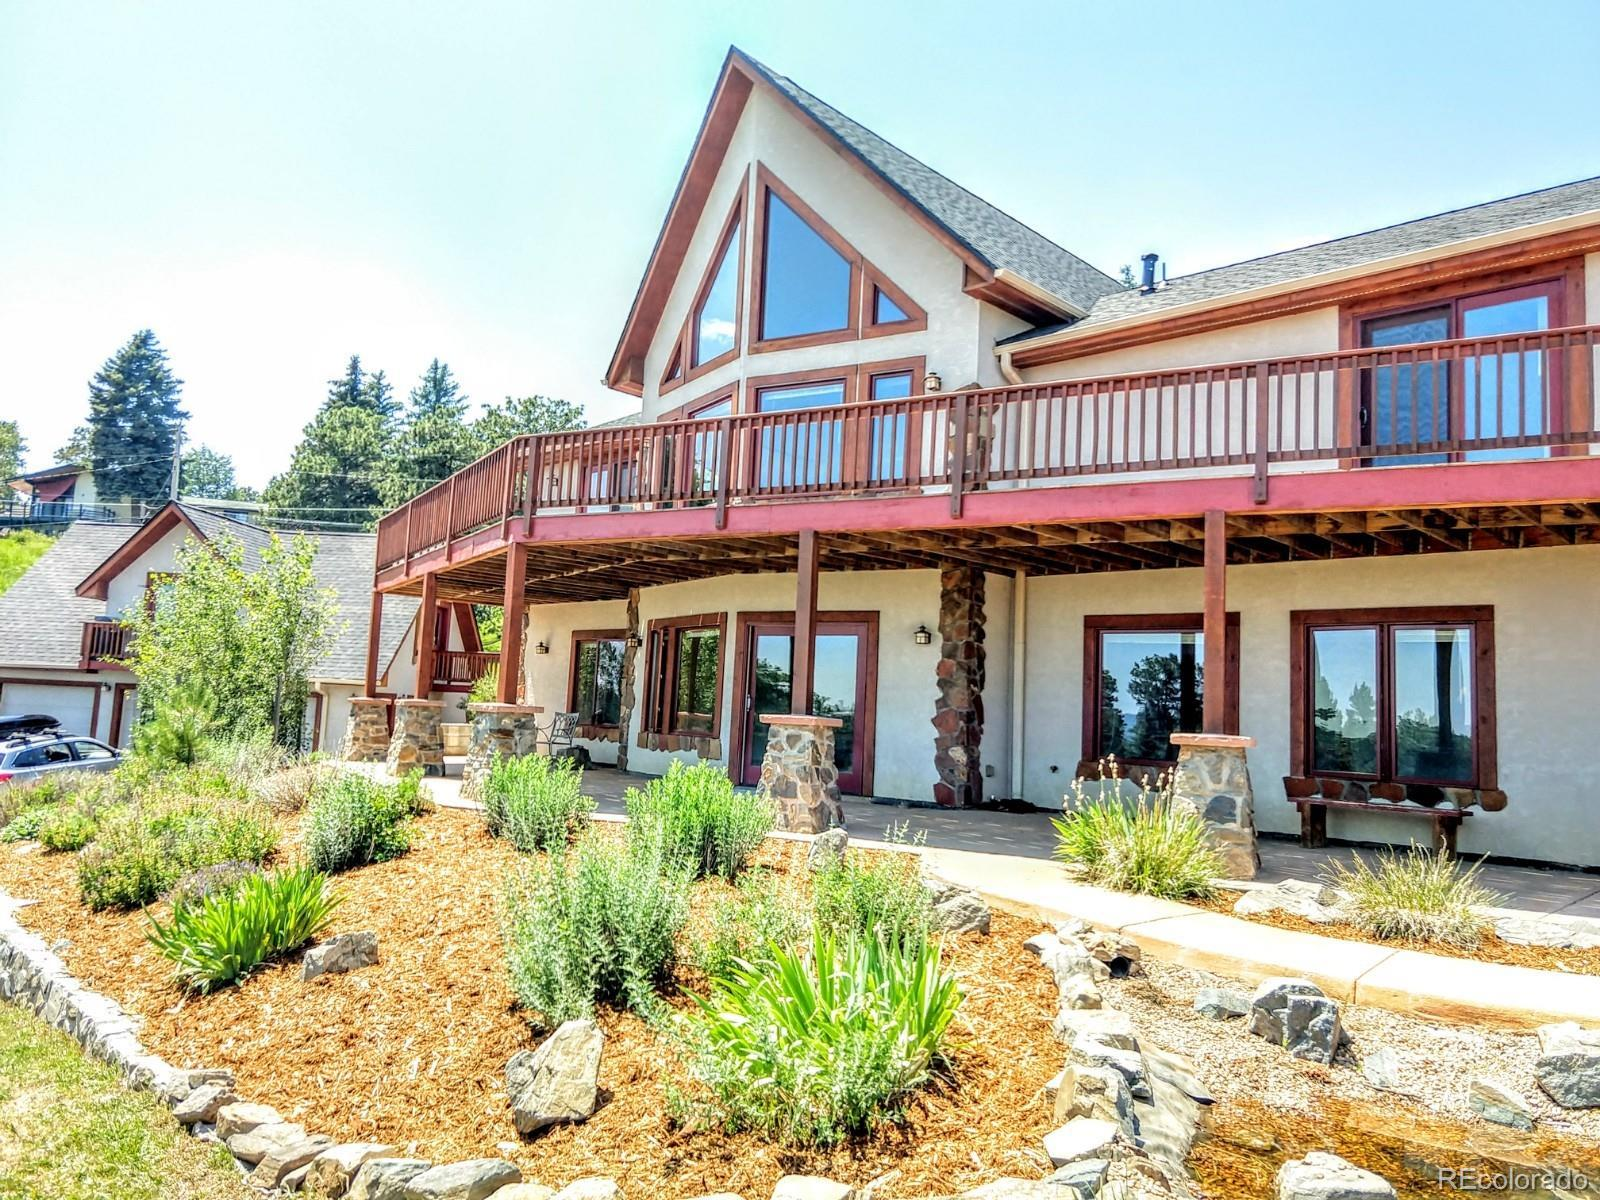 53 Paradise Road, Golden, CO | MLS# 5358278 | The Real